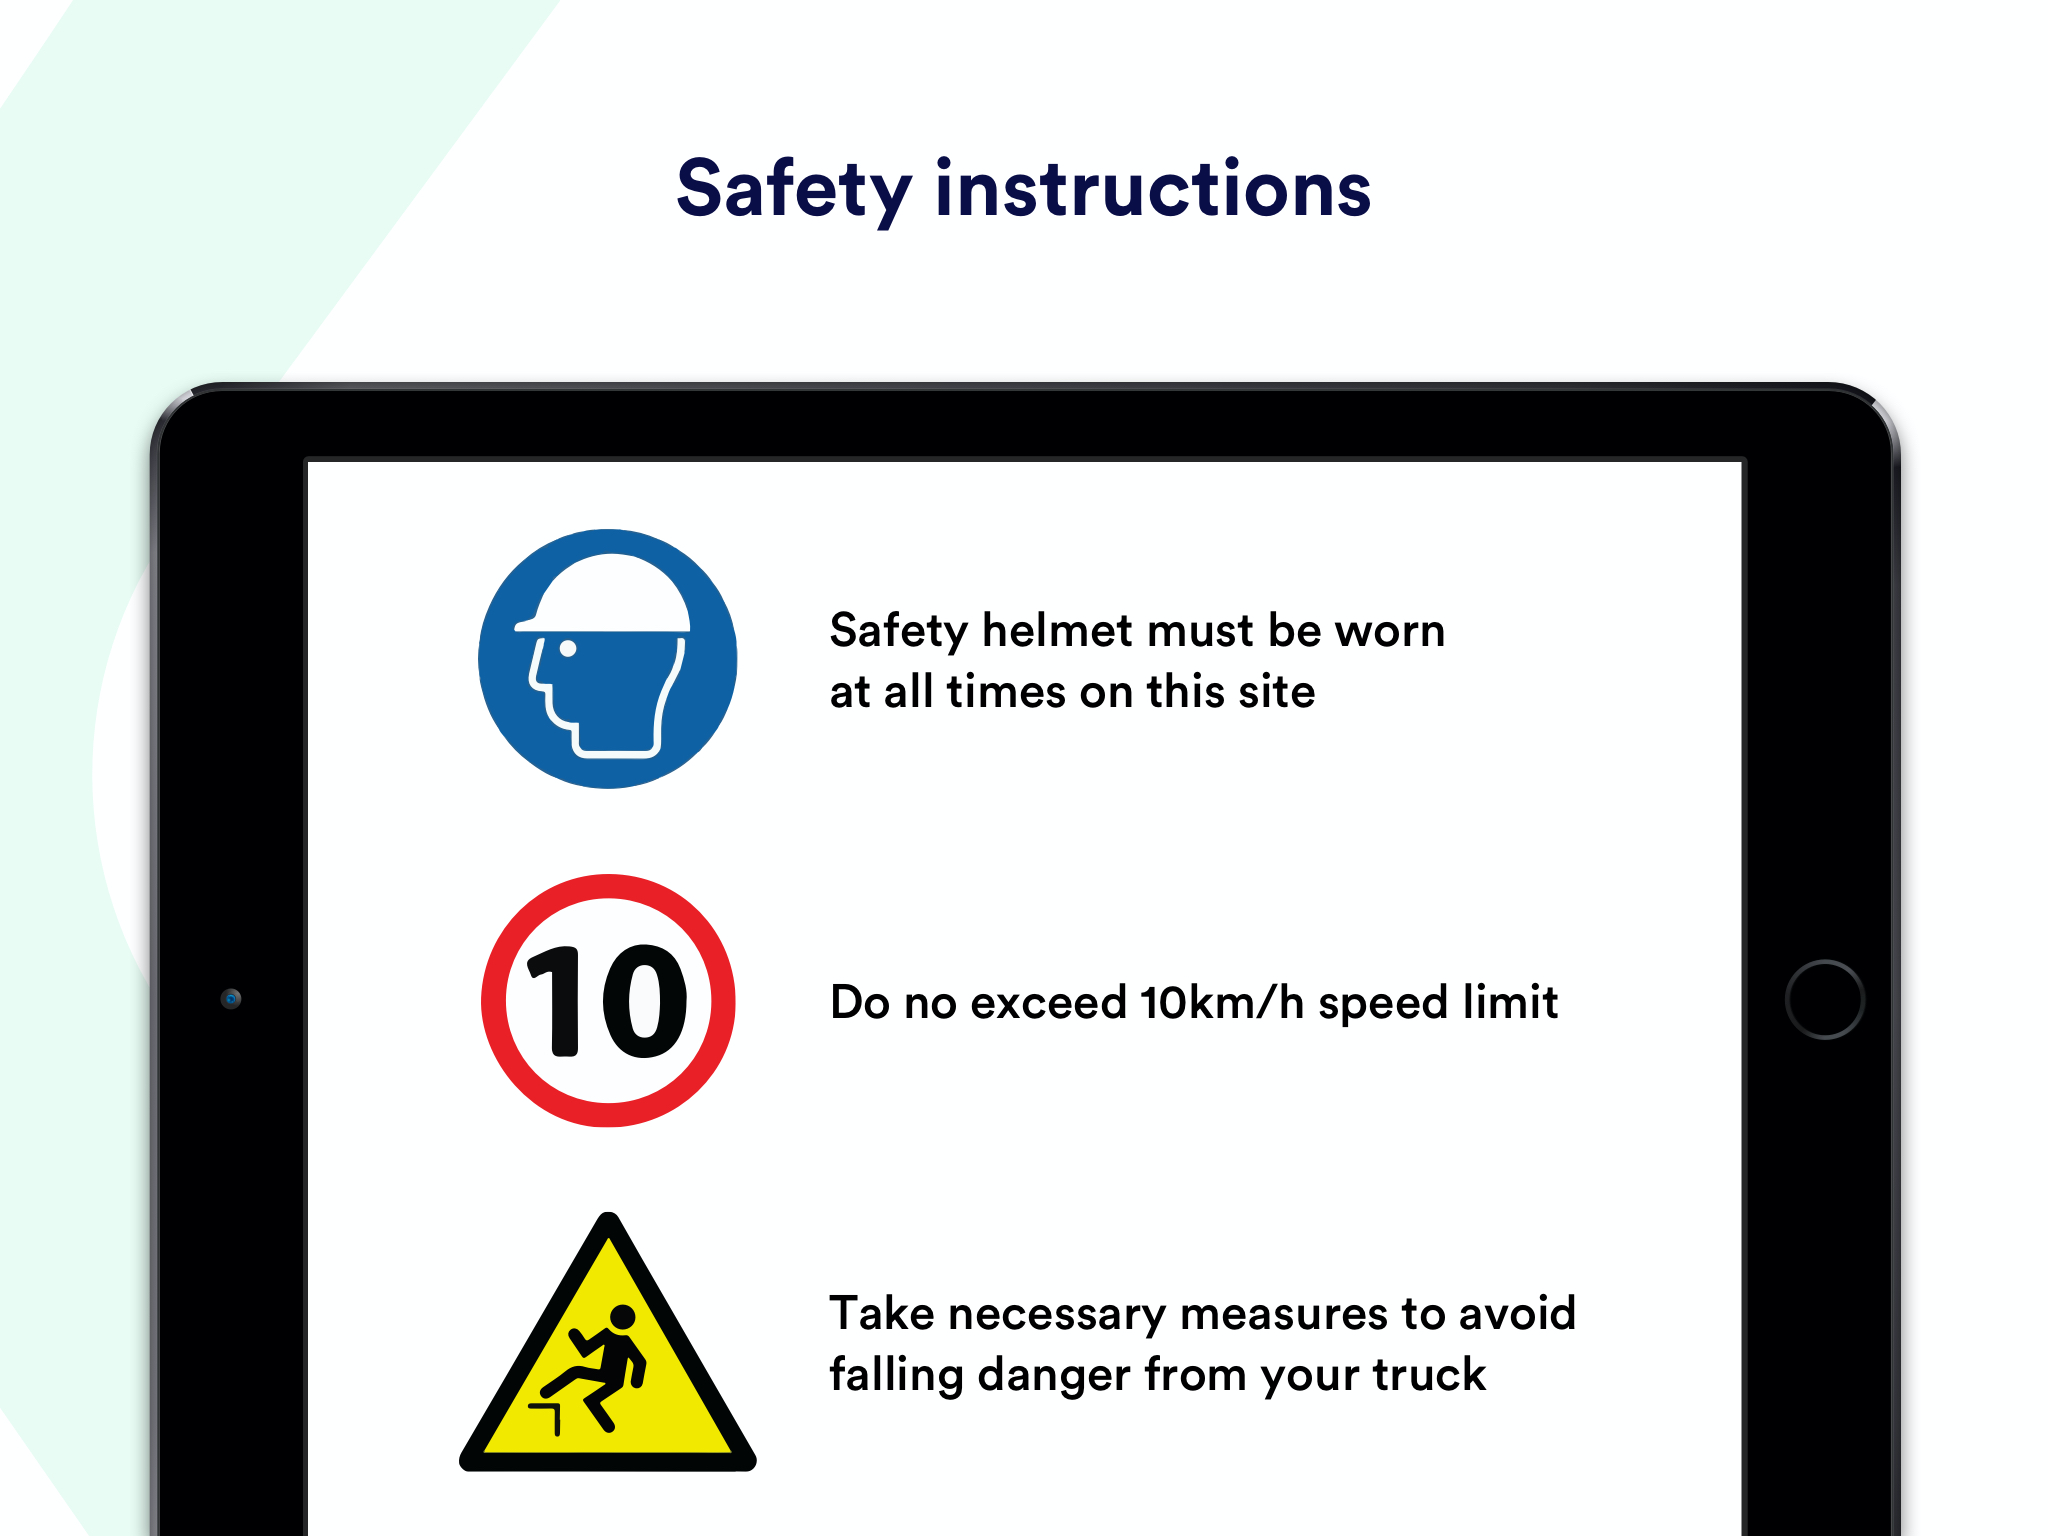 Add custom screens to display safety instructions your visitors or contractors should be aware of.